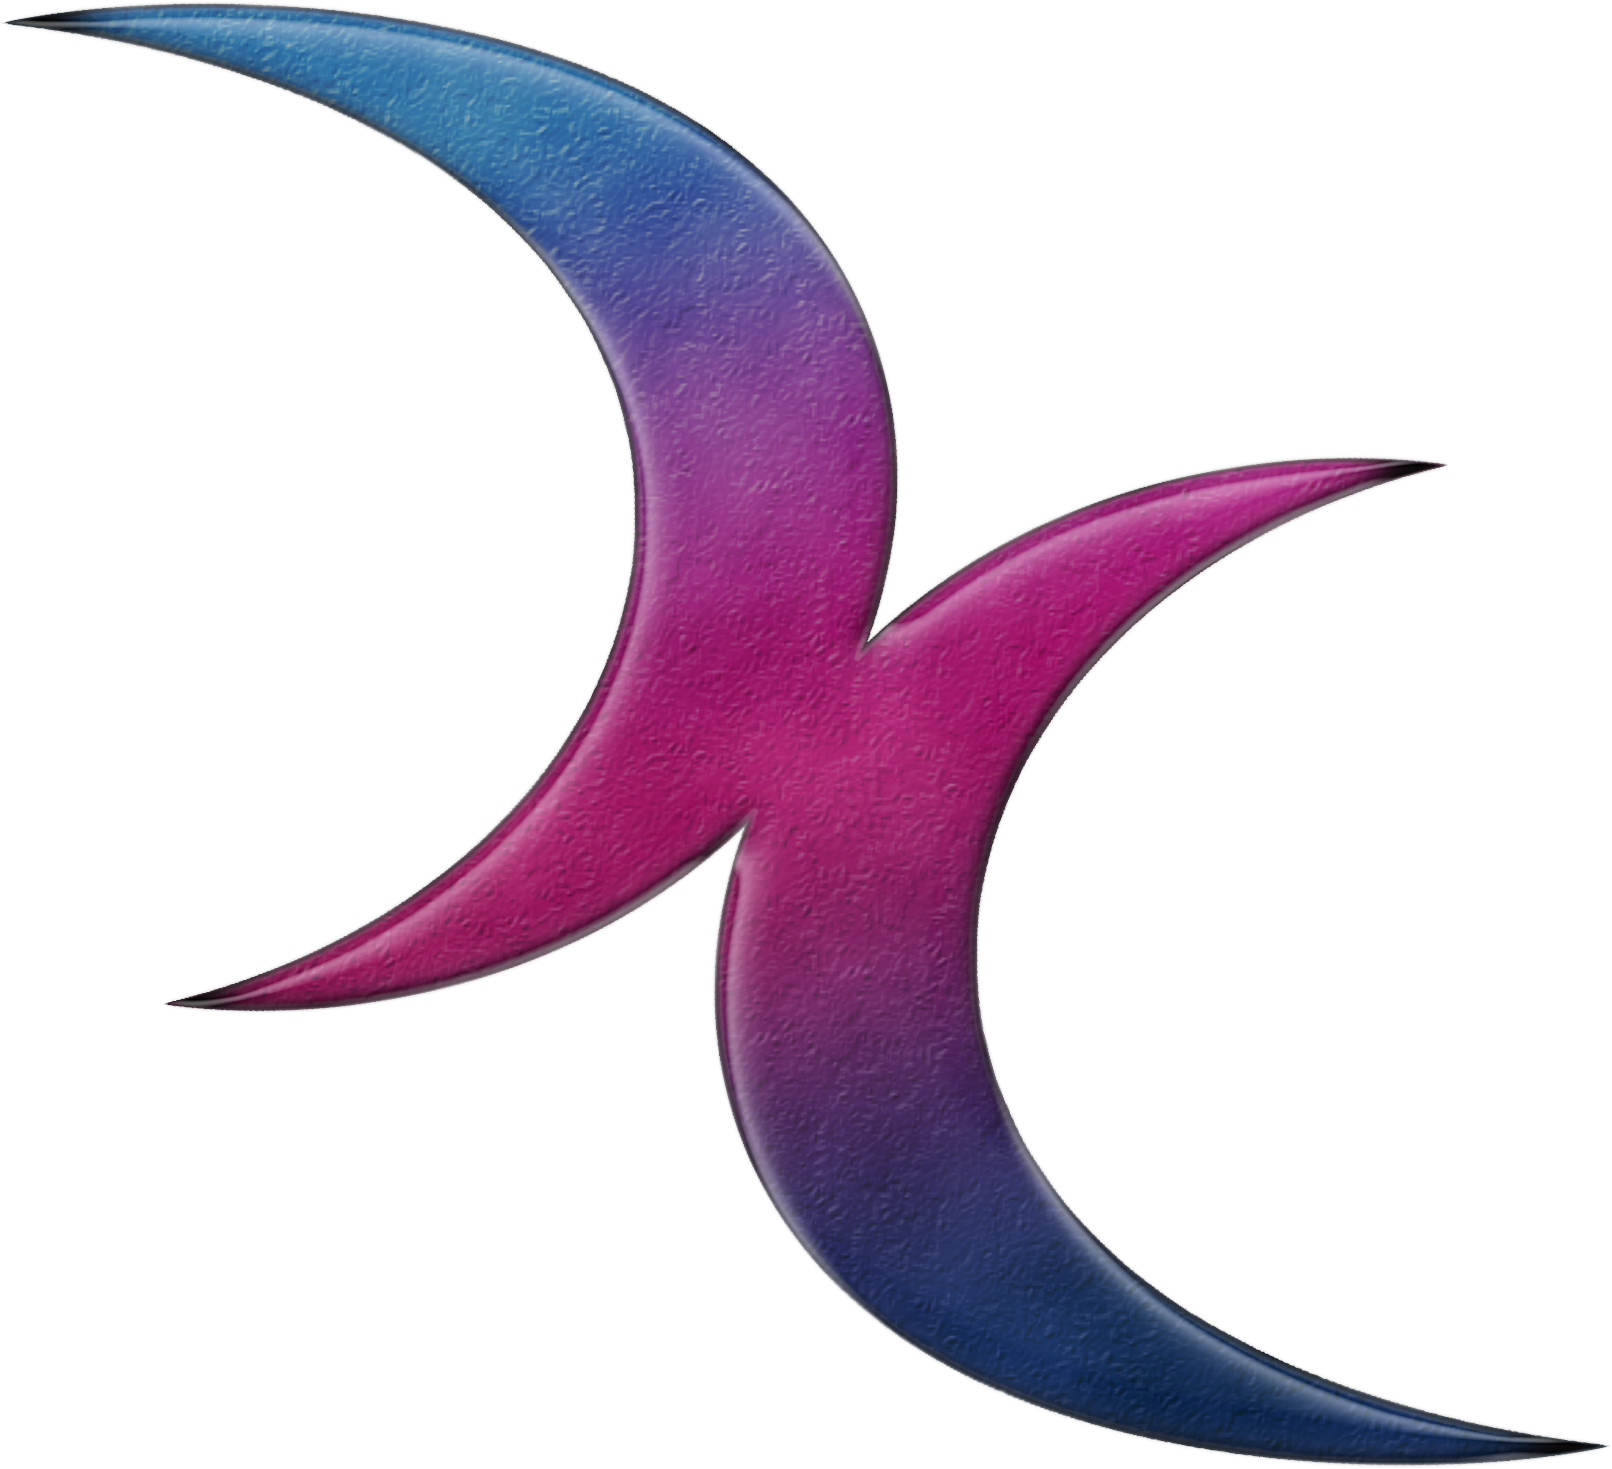 Pin On Bisexual Pride Live Loud Graphics